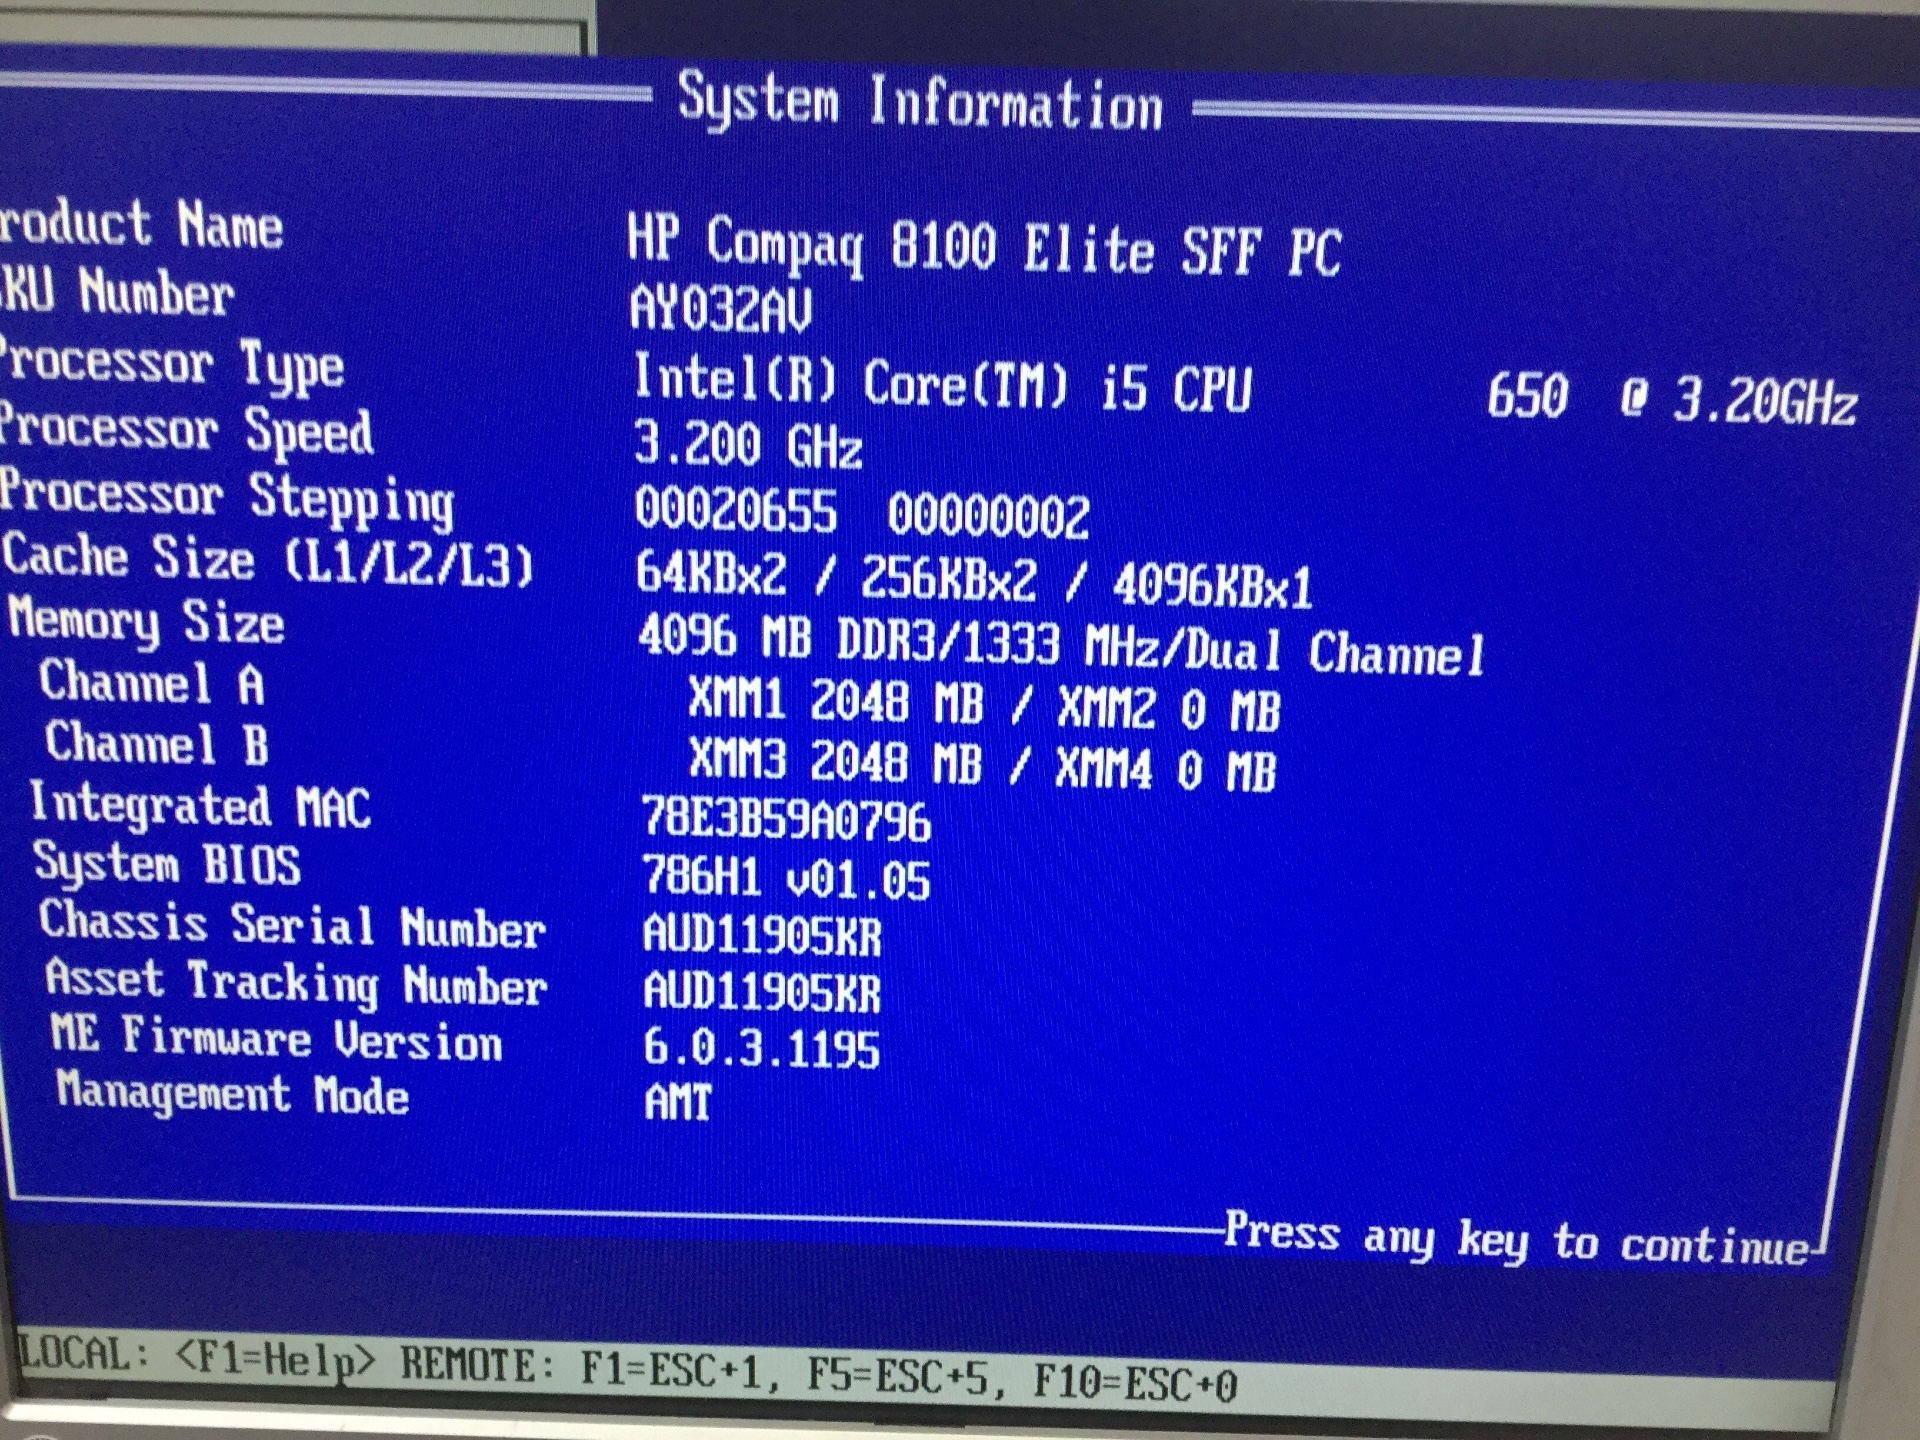 Desktop, HP Compaq 8100 Elite SFF PC, Appears to Function